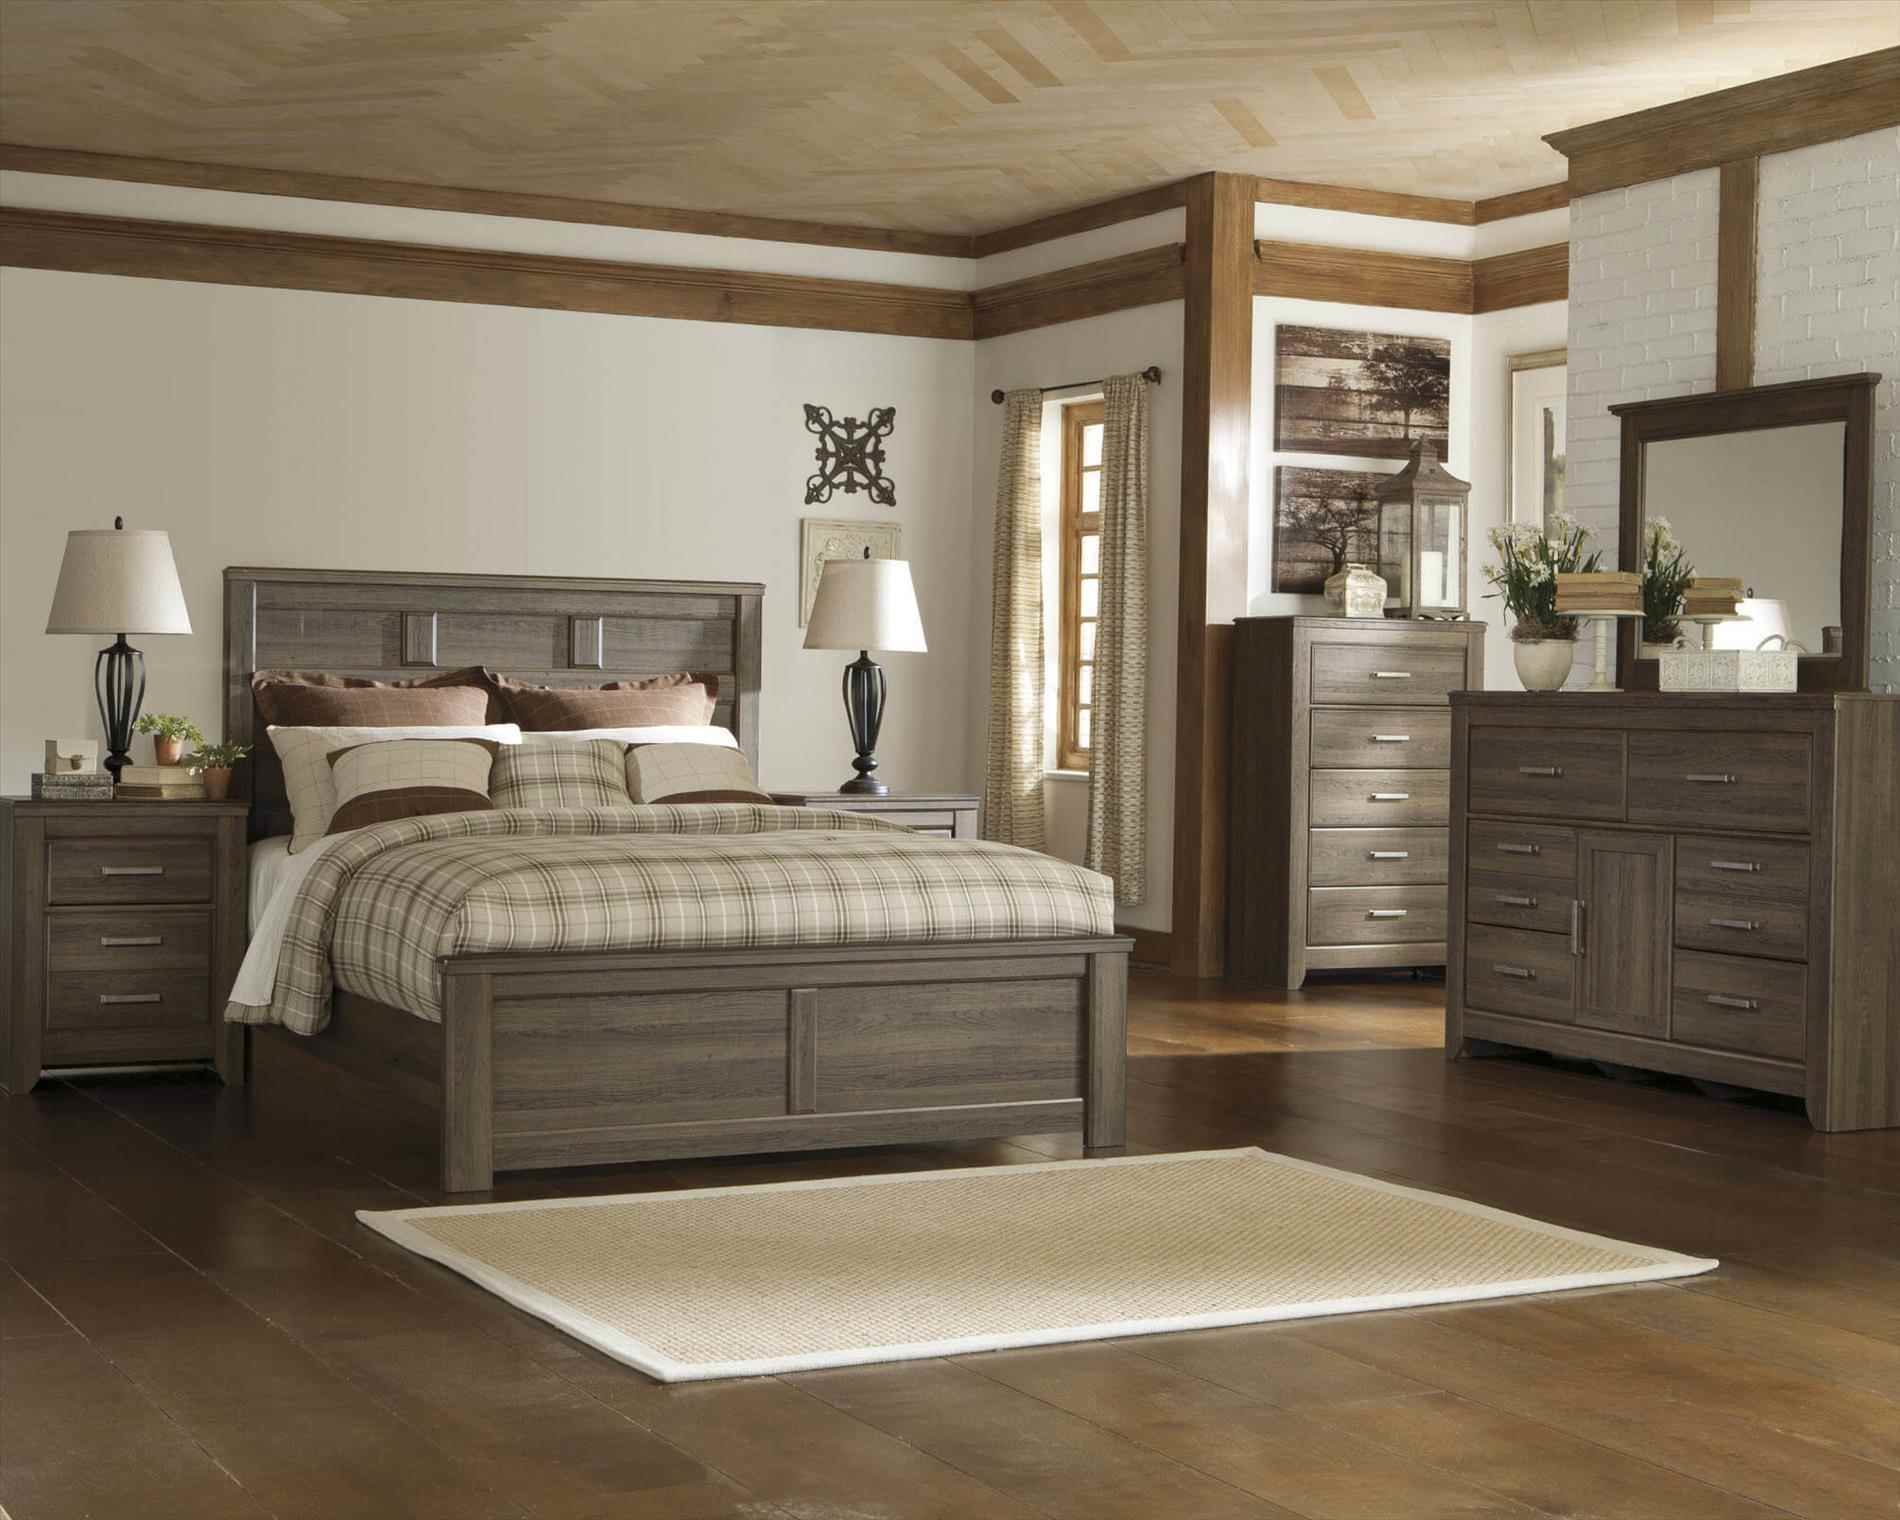 Best Discontinued Bedroom Sets Buyloxitane Com With Pictures